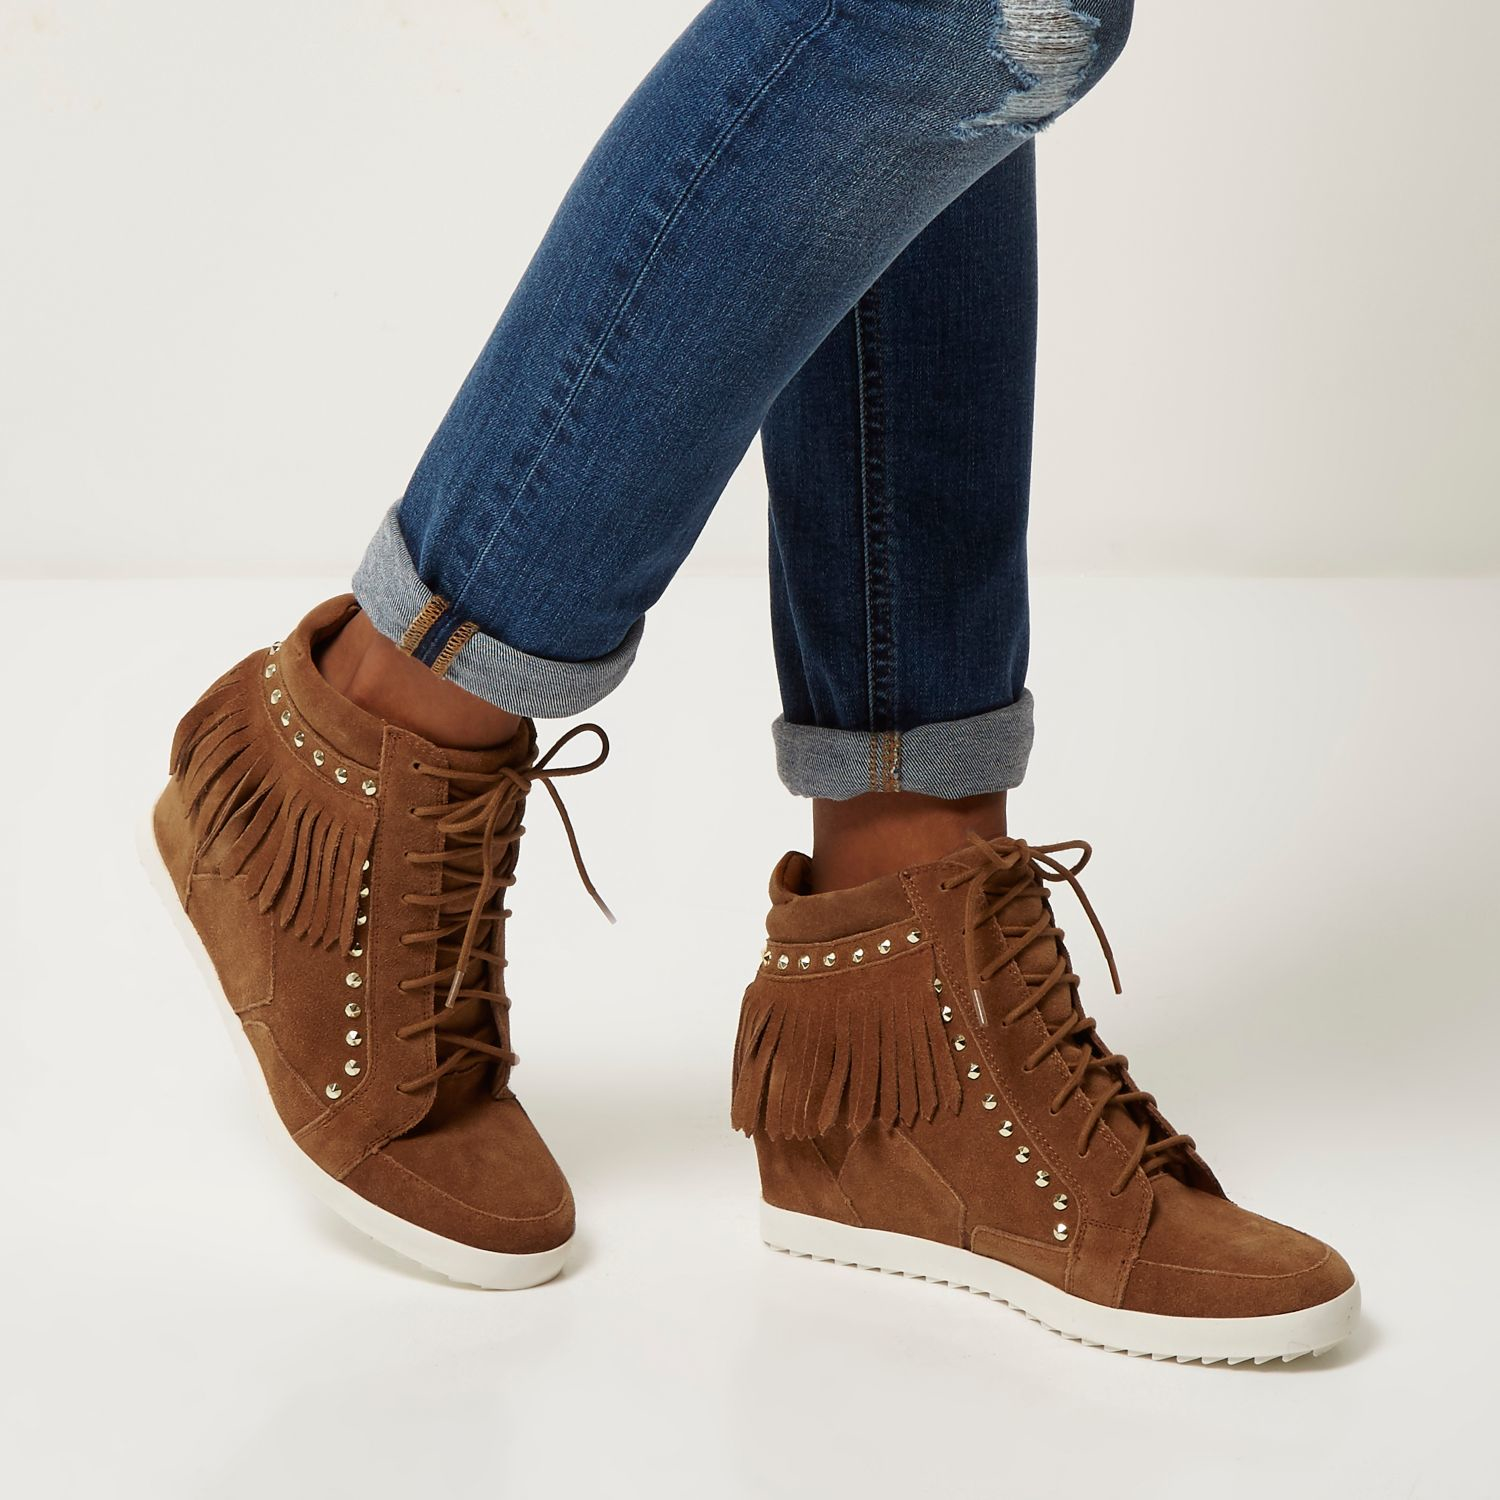 River Island Tan Suede Fringed High Top